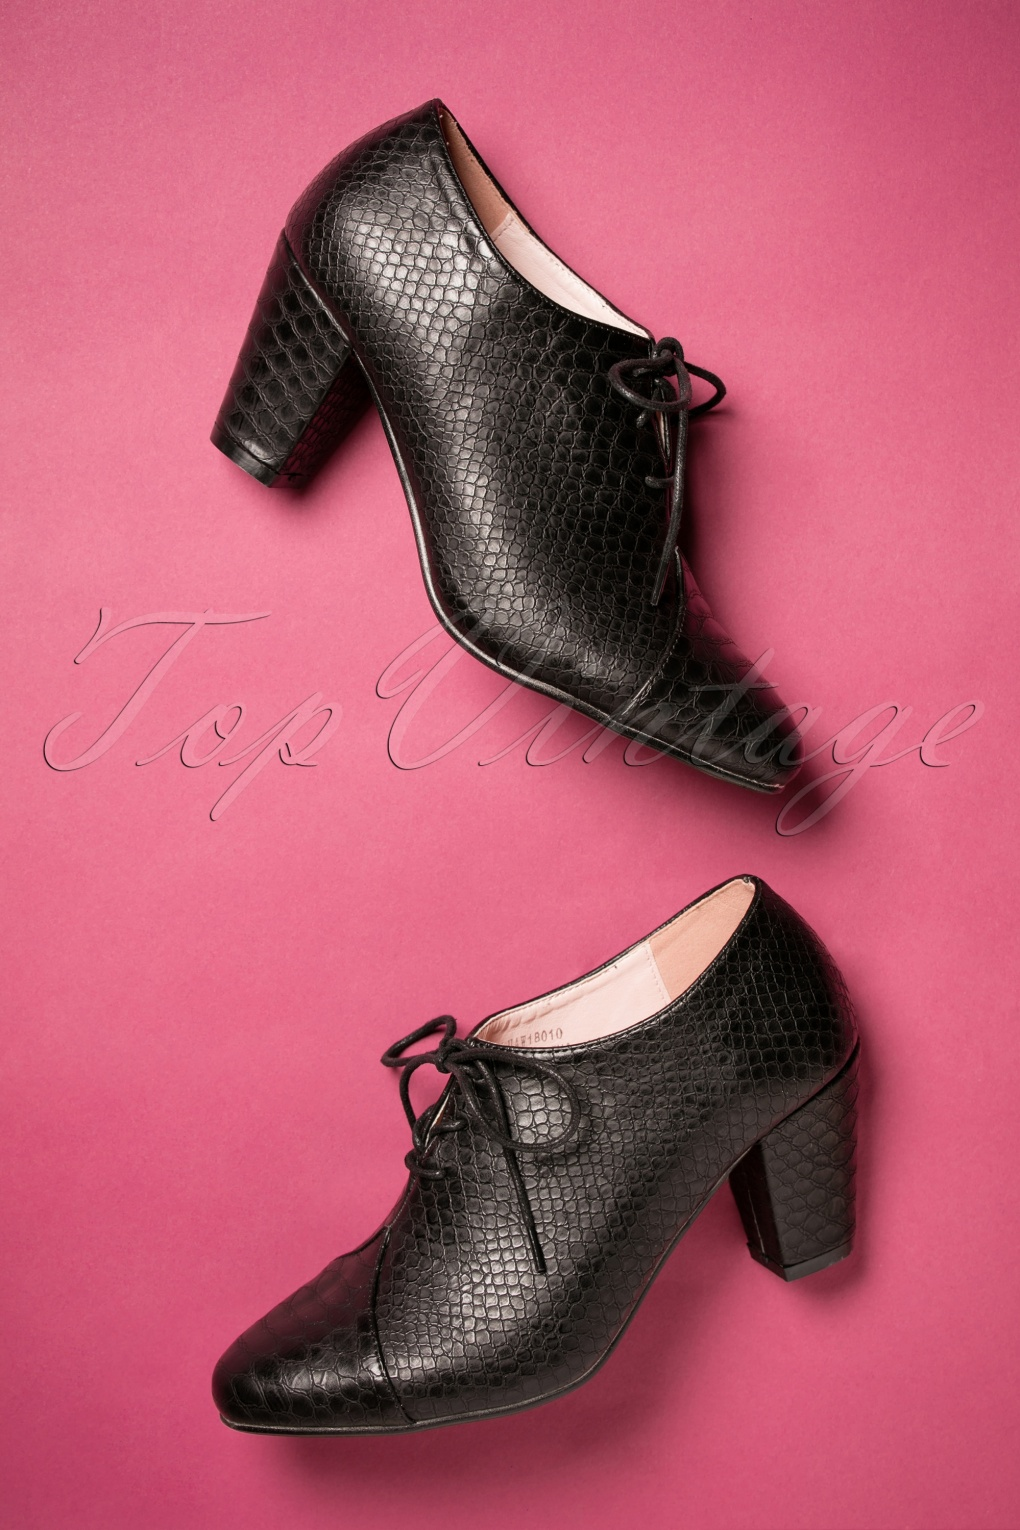 Authentic Natural 1950s Makeup History and Tutorial 40s Amelia Shoe Booties in Black £46.69 AT vintagedancer.com